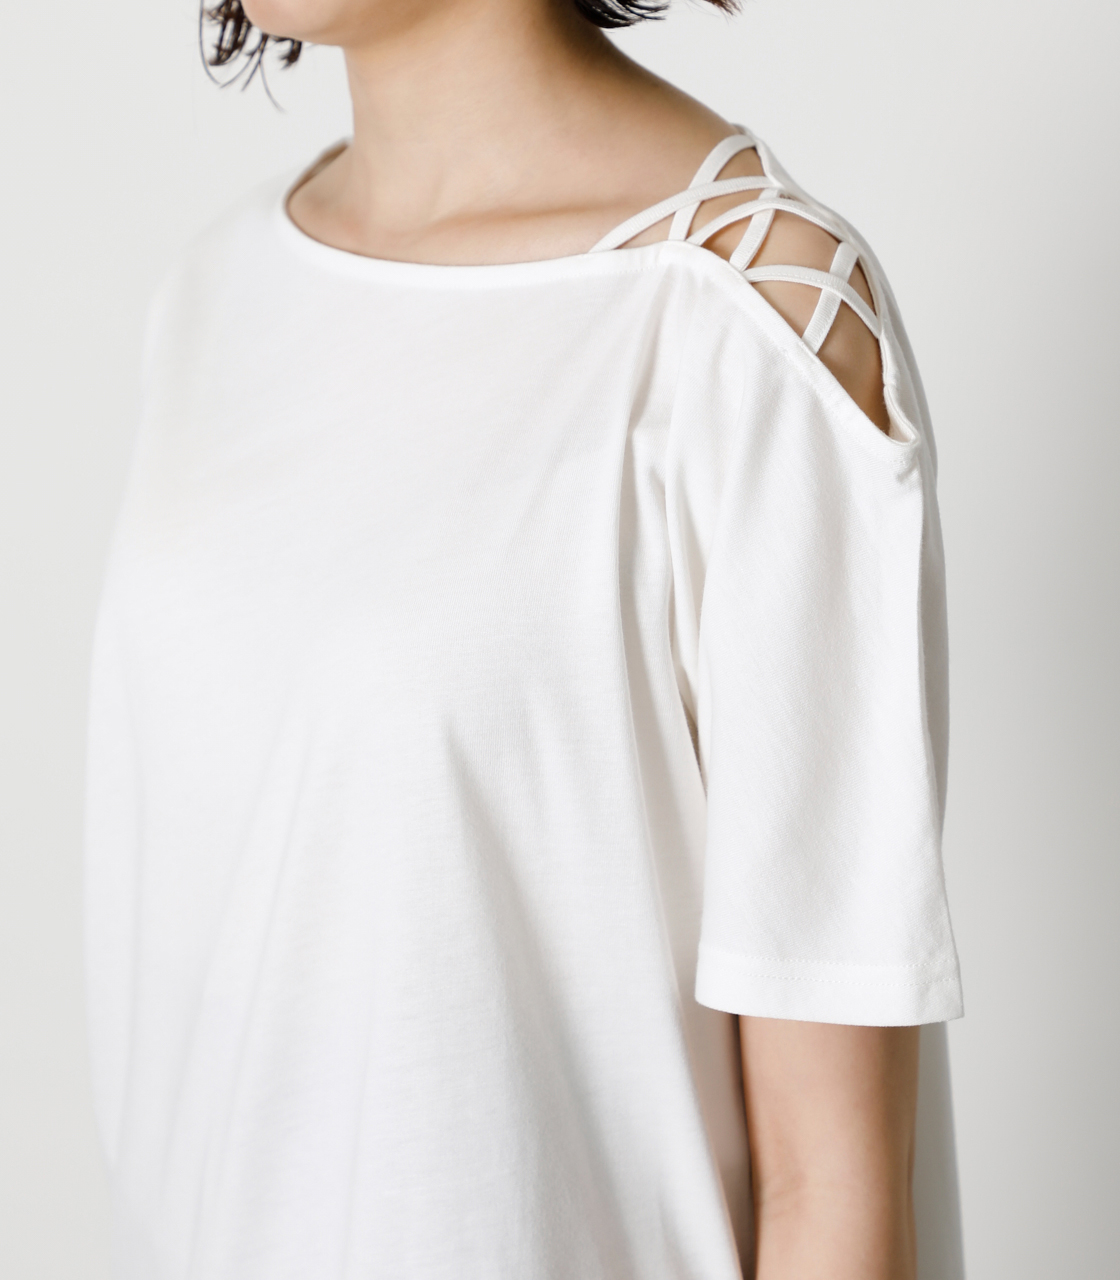 SHOULDER LACE UP TOPS/ショルダーレースアップトップス 詳細画像 O/WHT 8